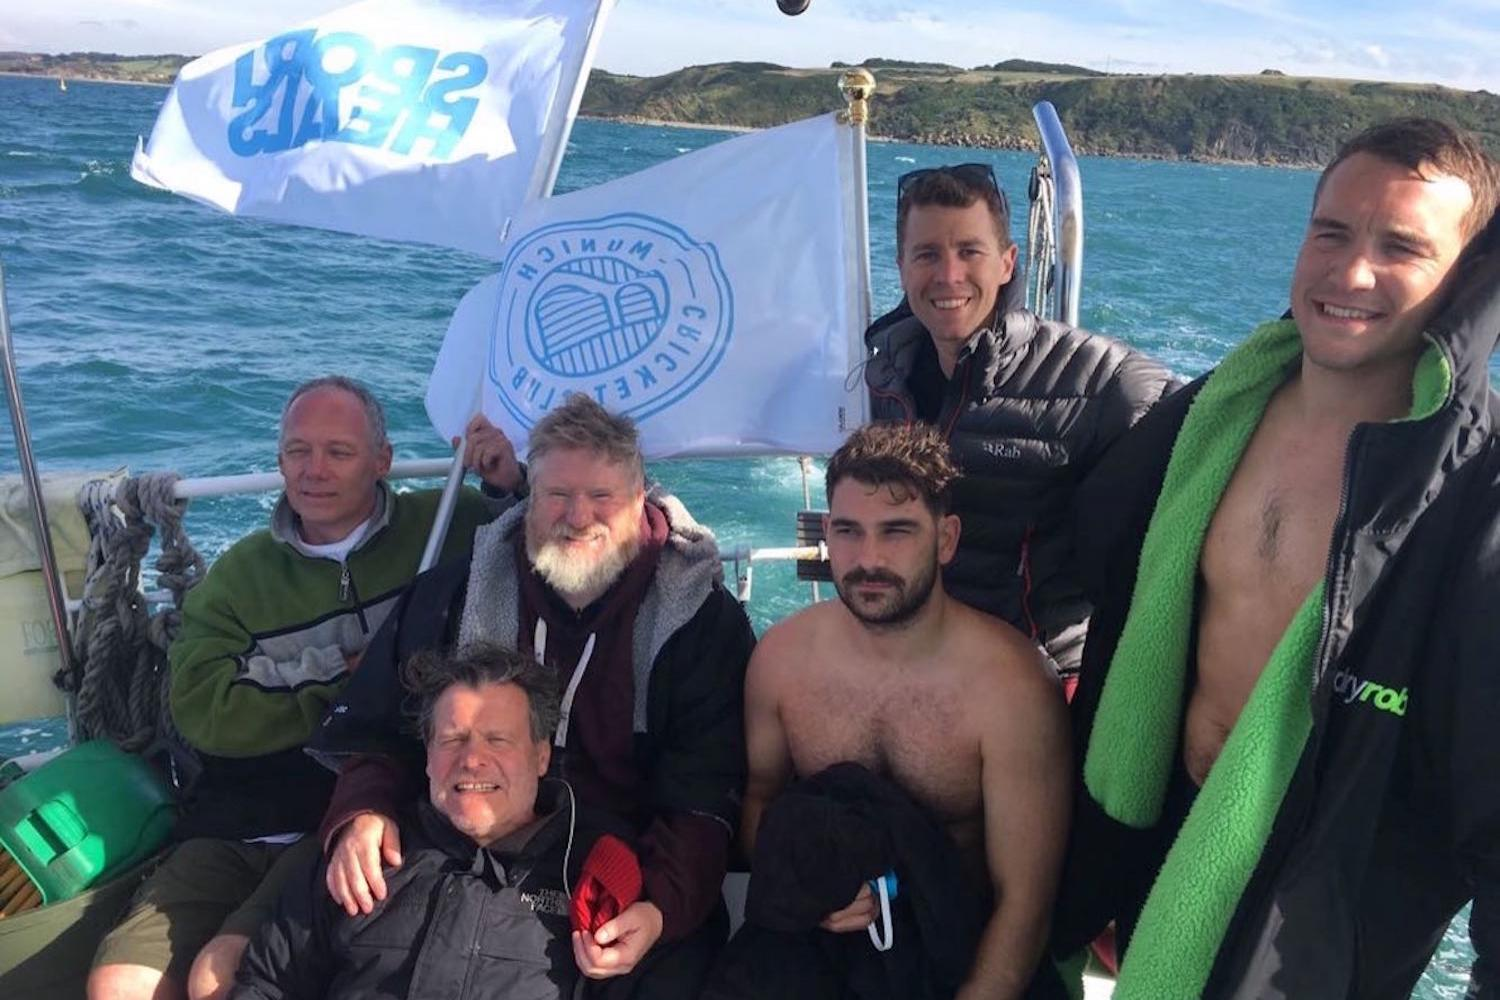 SportHeals volunteers swim English Channel to raise funds for Disability Sports Coach